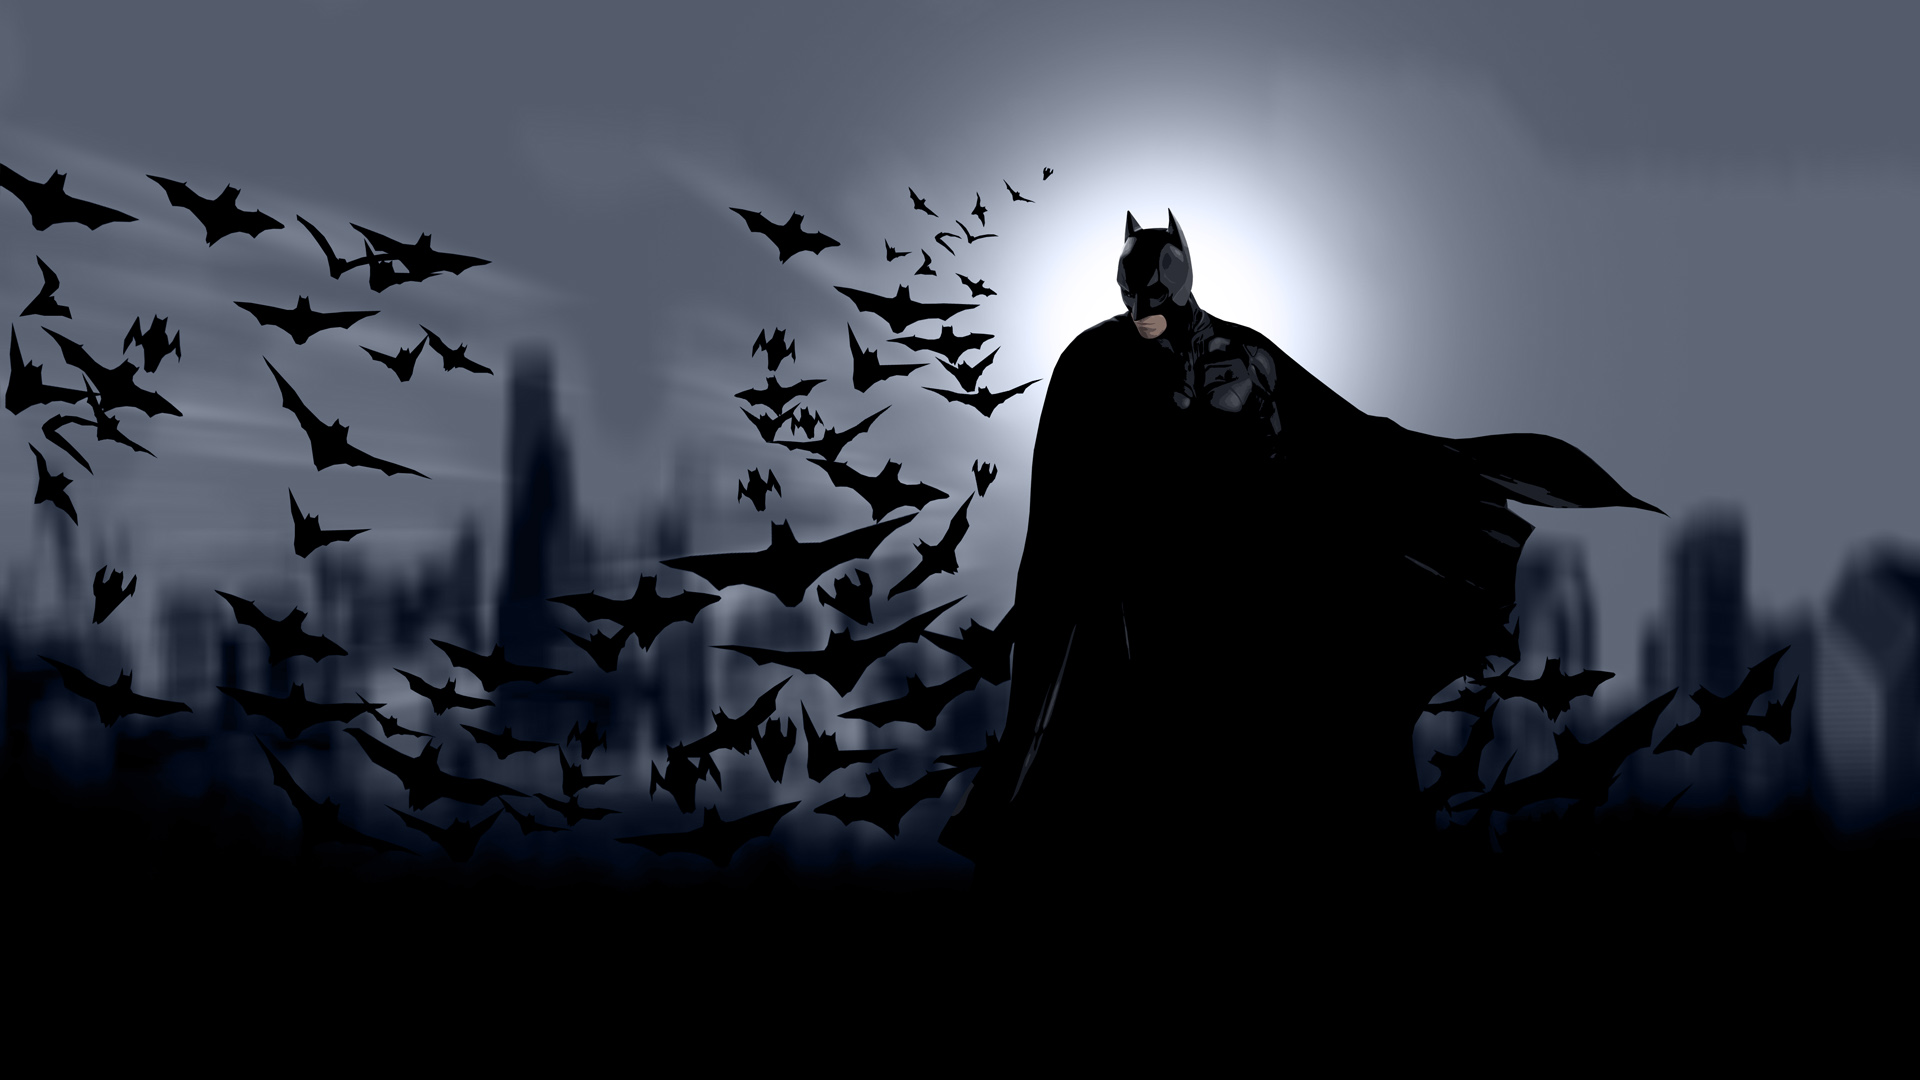 Enjoy our wallpaper of the week Batman Batman wallpapers 1920x1080